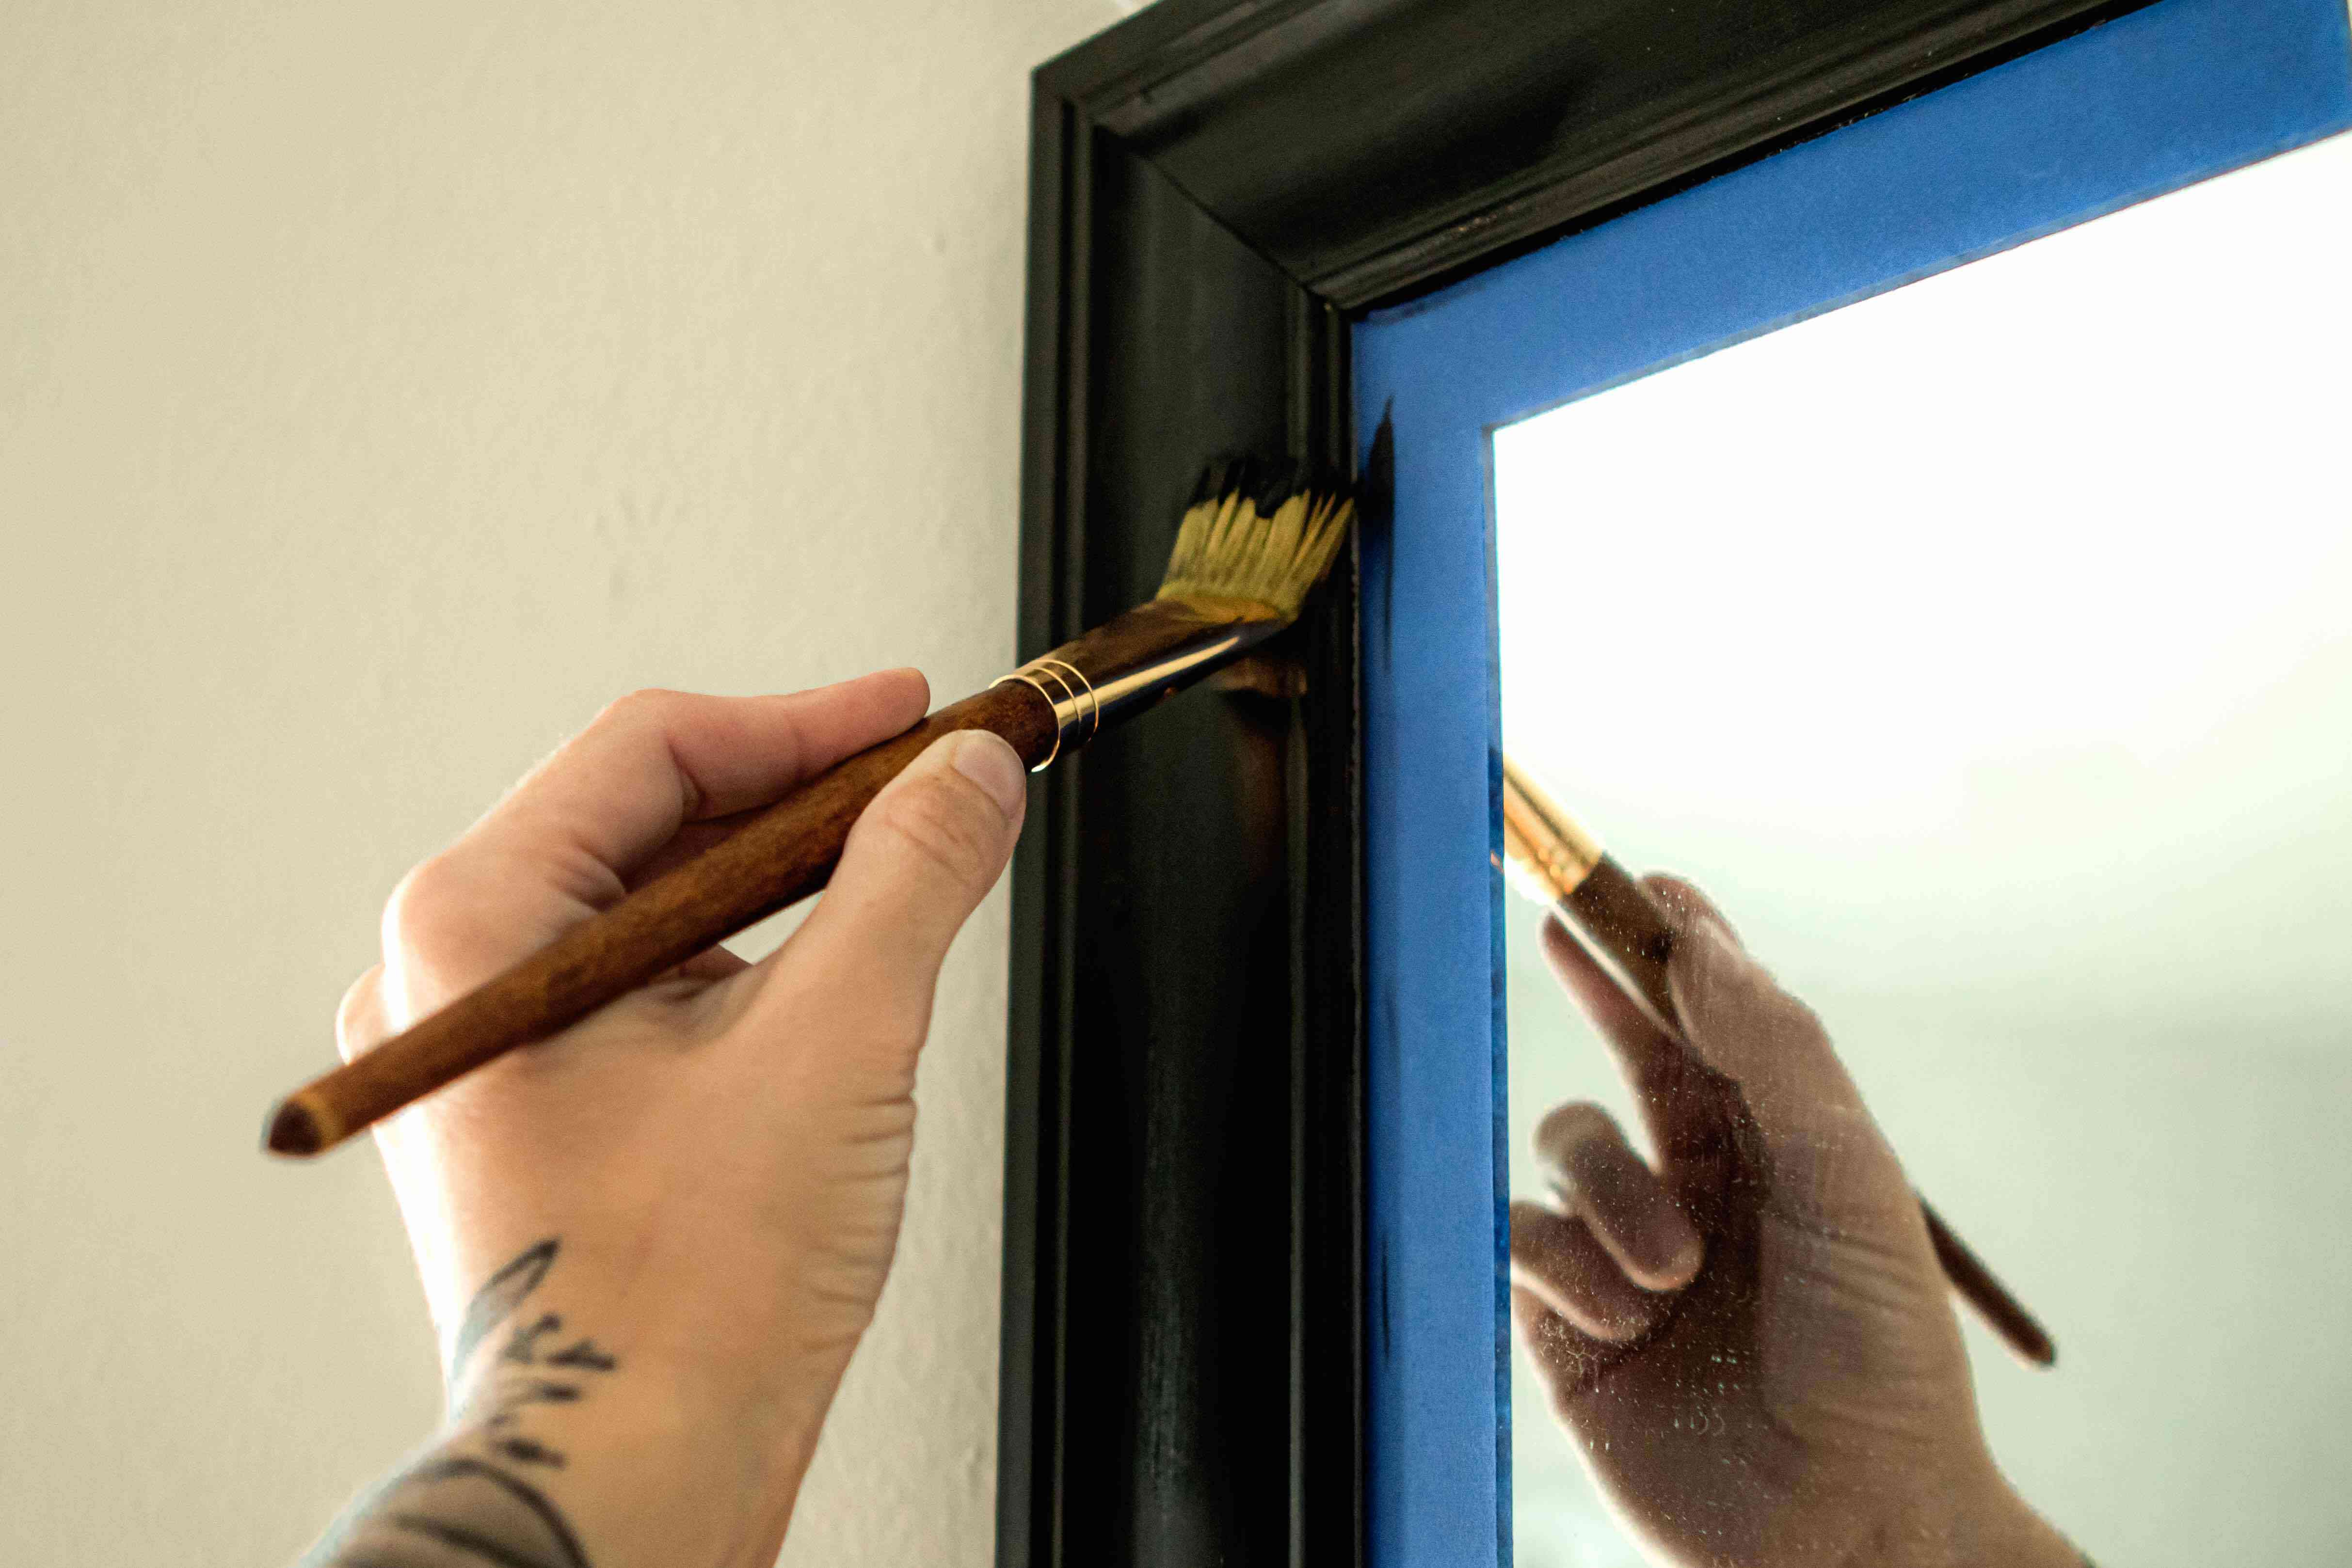 blue painter's tape is attached to mirror while person paints frame black with paintbrush